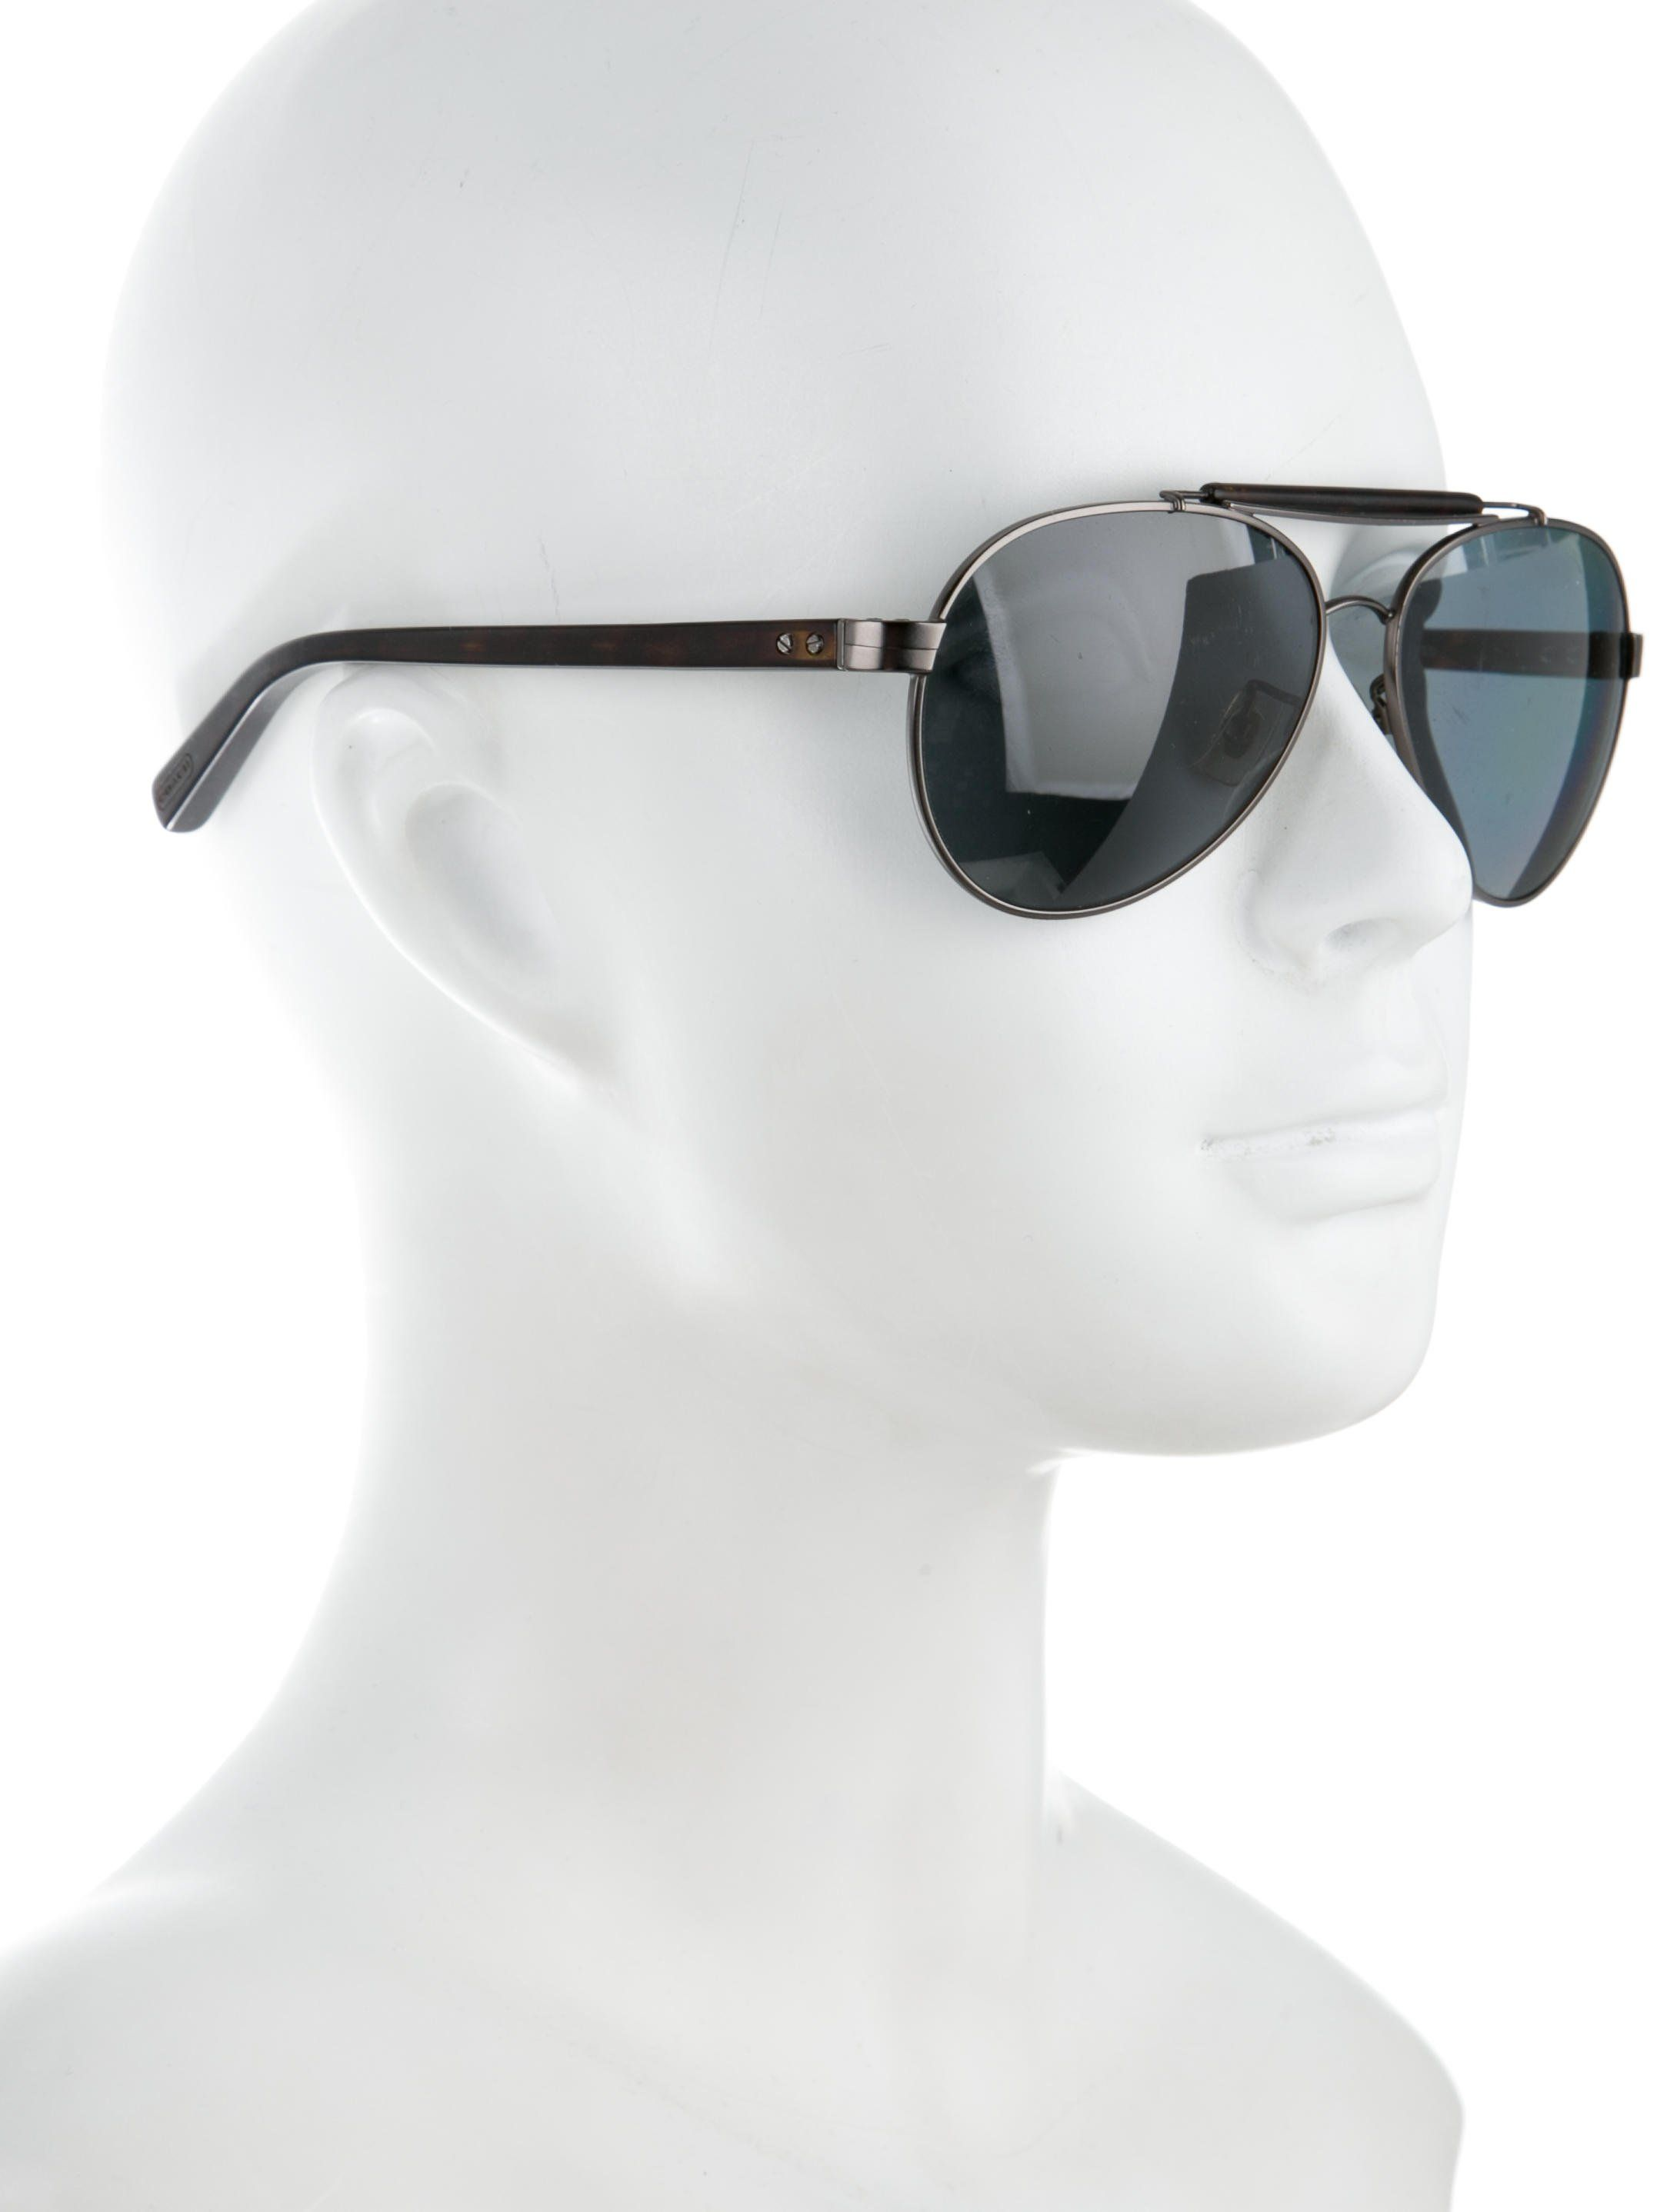 b6acfeed9690f Men s gunmetal Coach Harrison aviator sunglasses with polarized lenses and  logos at arms. Includes case.